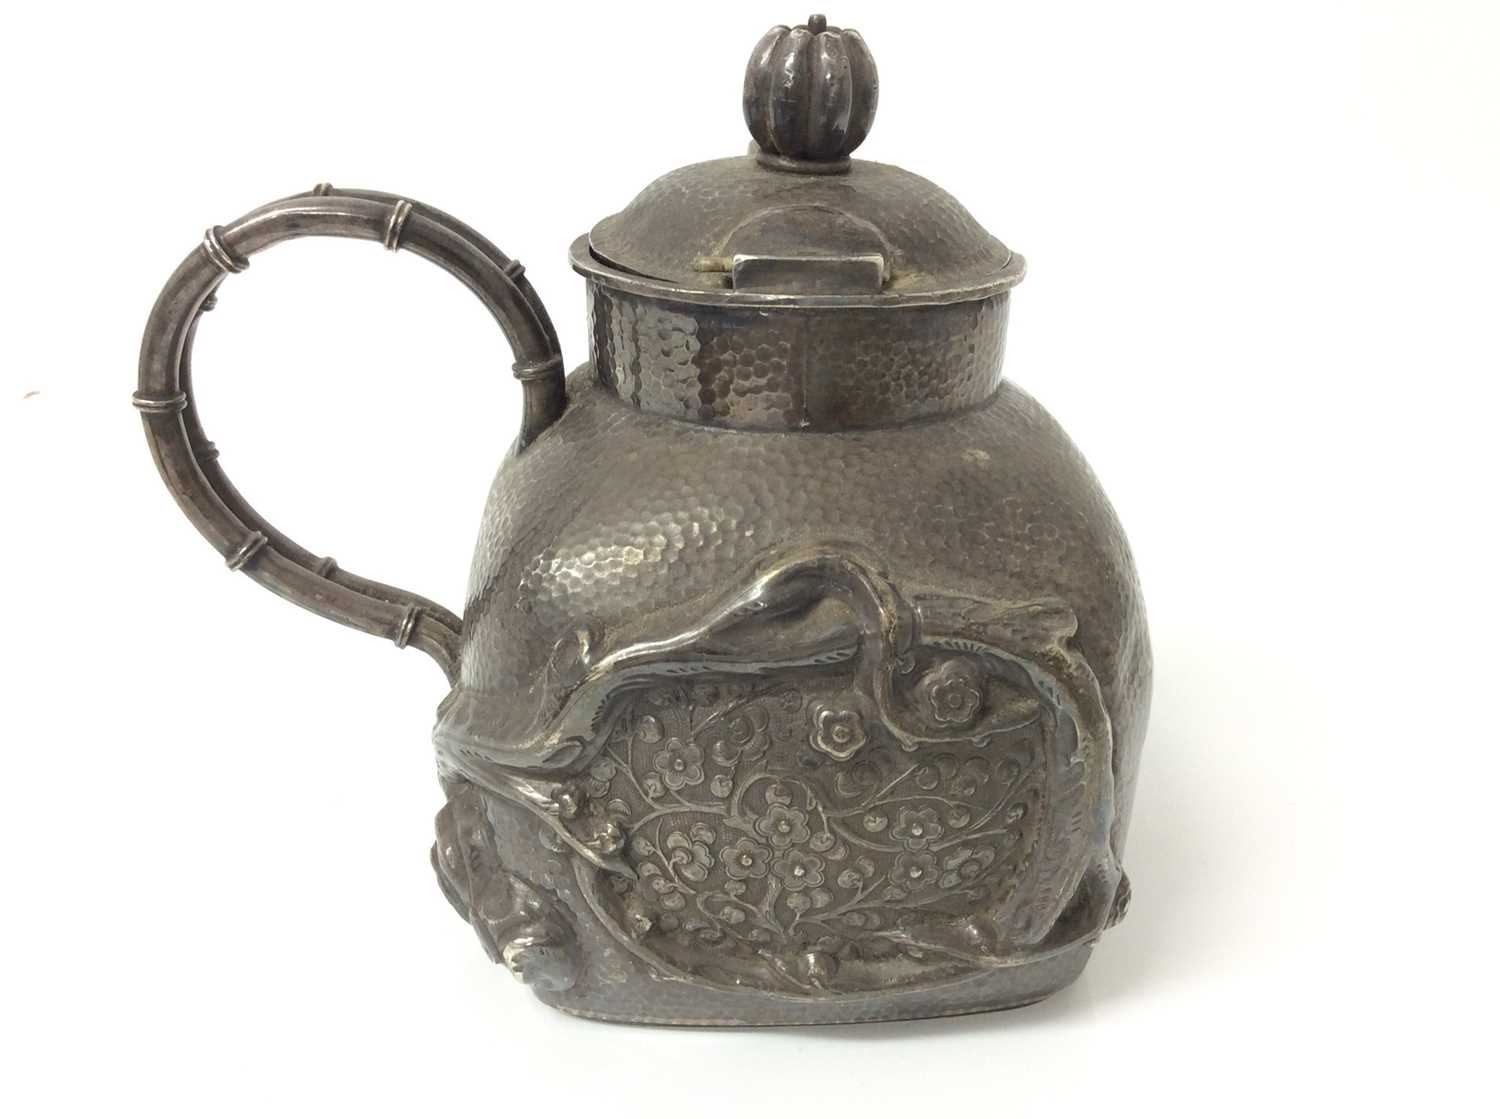 Chinese silver teapot and jug - Image 3 of 12